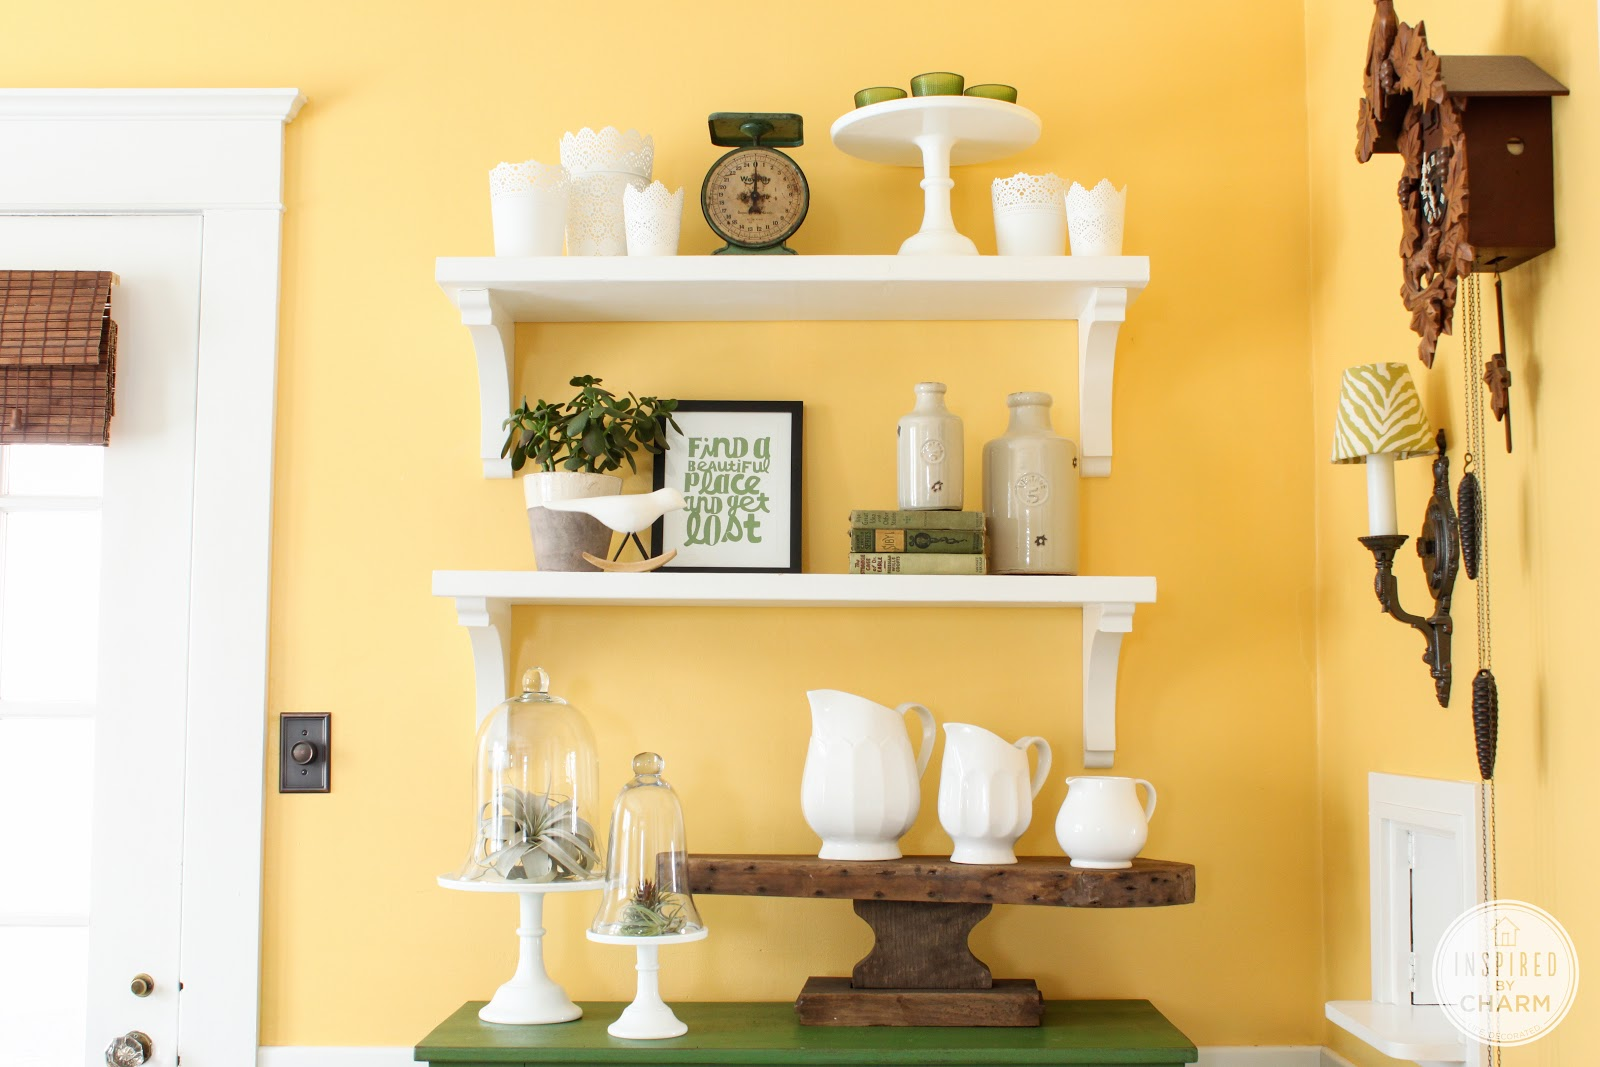 dinning room shelf update - inspiredcharm